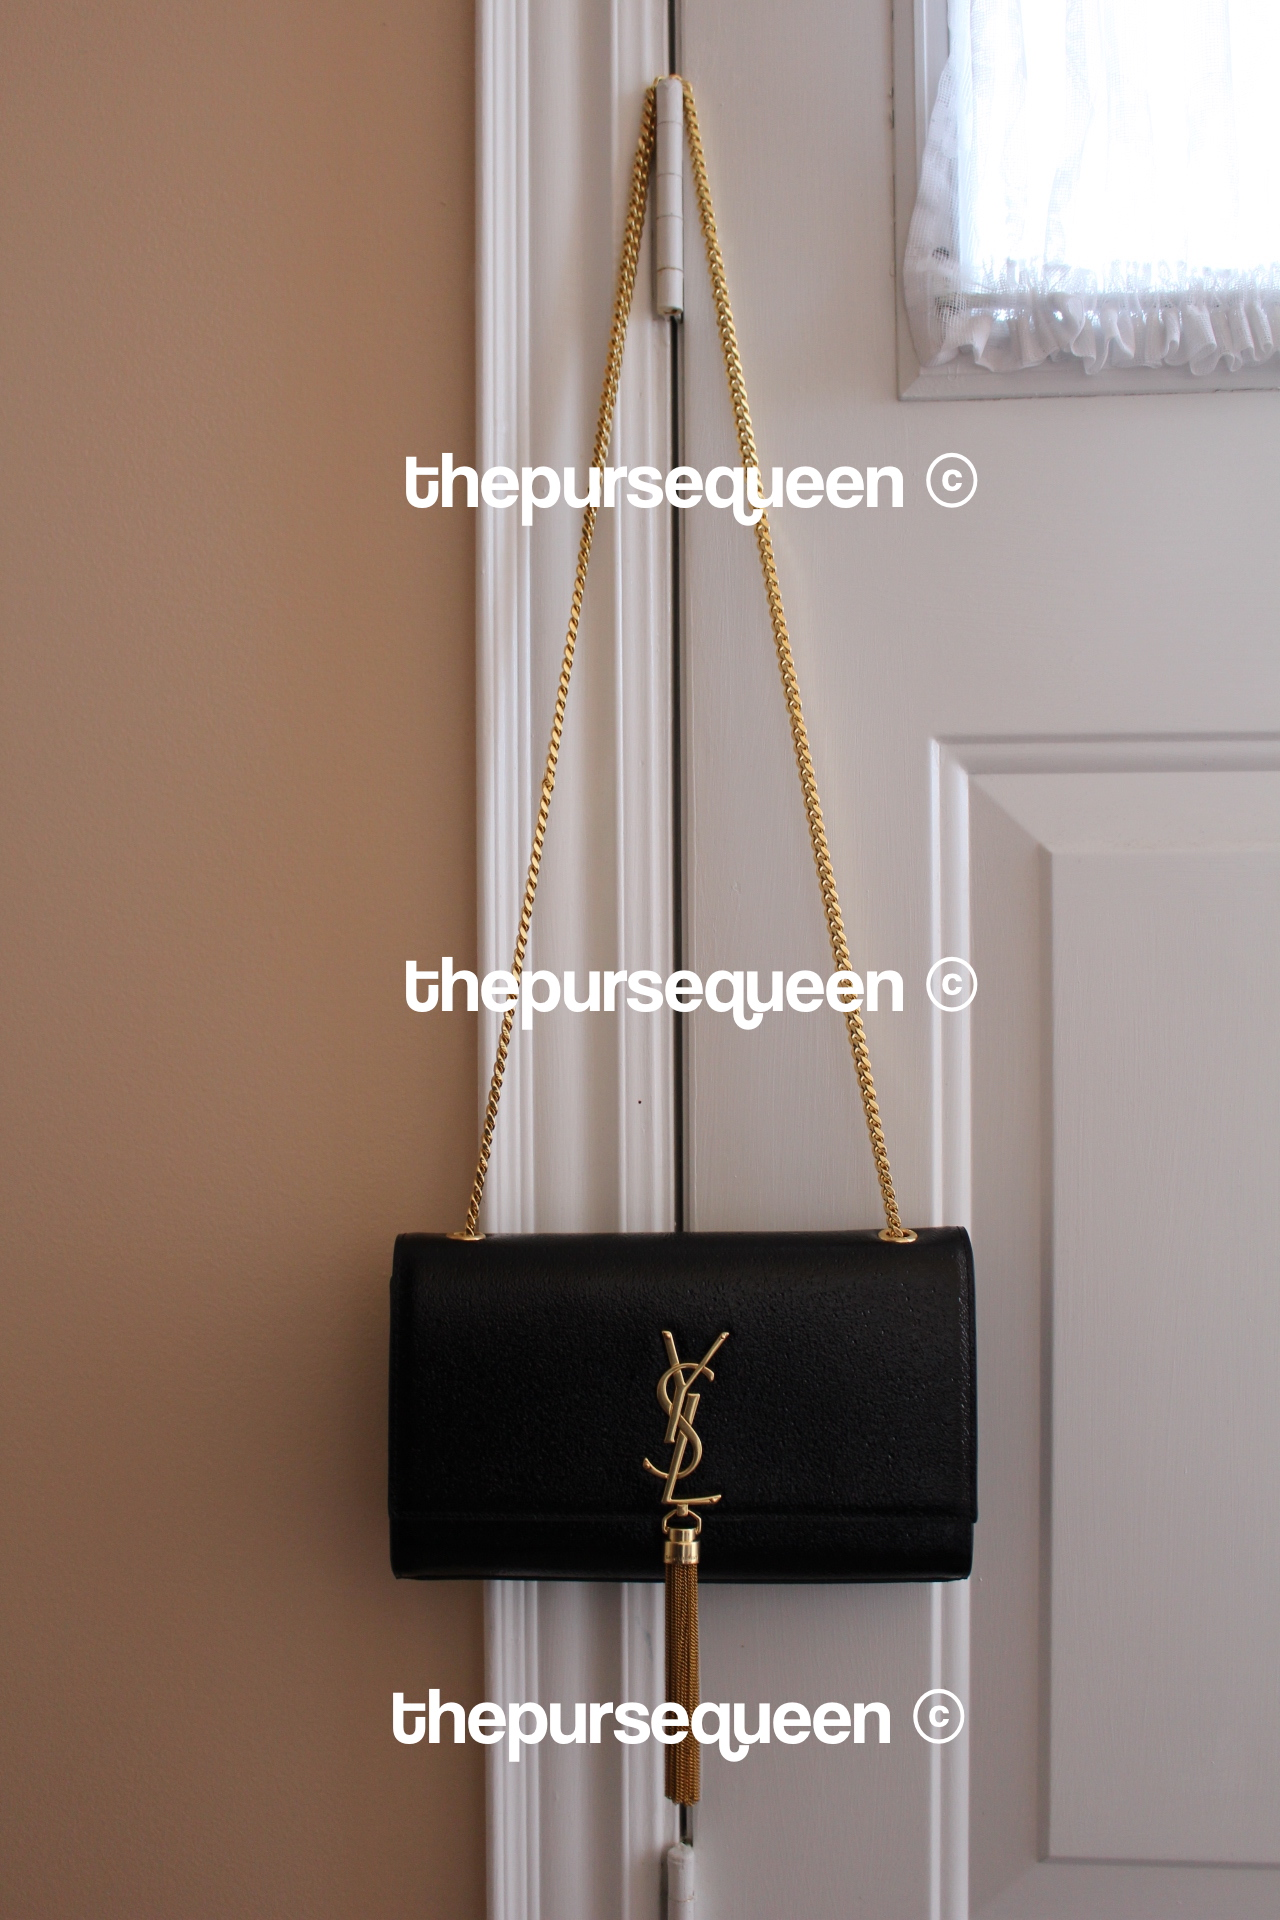 ffe53eec31dc saint laurent bag ysl